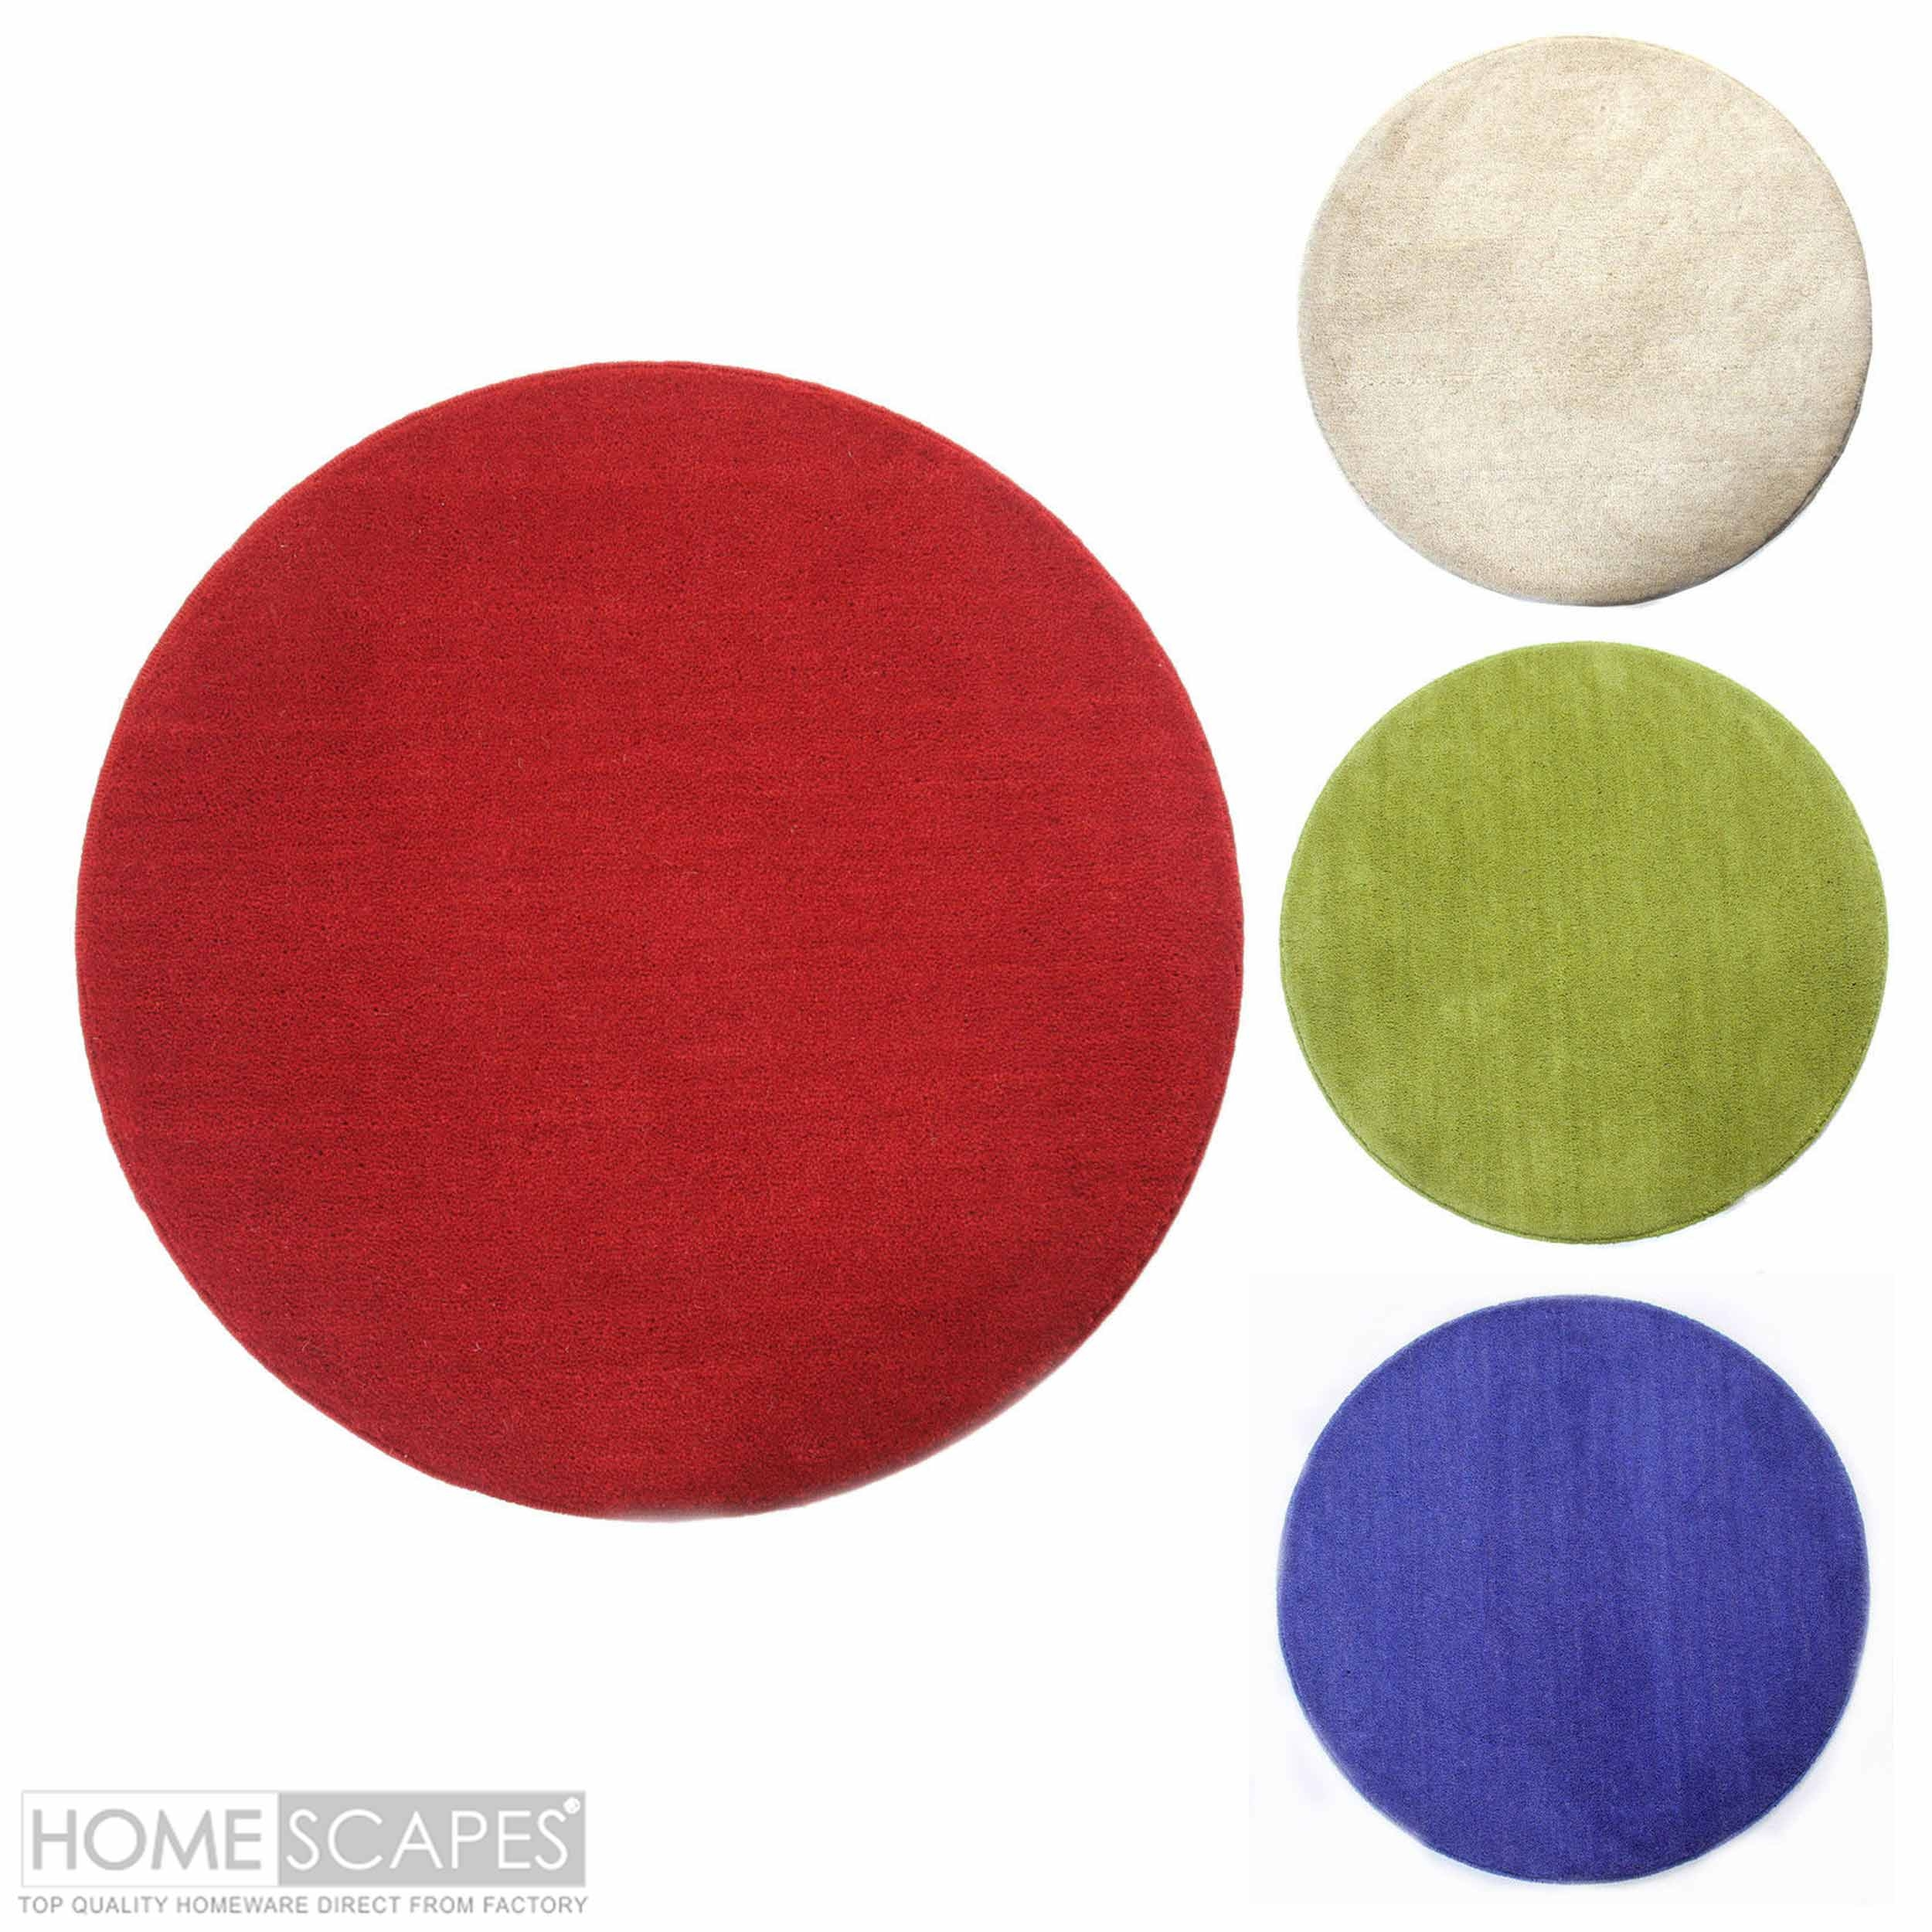 Small Red Rugs Roselawnlutheran For Small Red Rugs (Image 11 of 15)